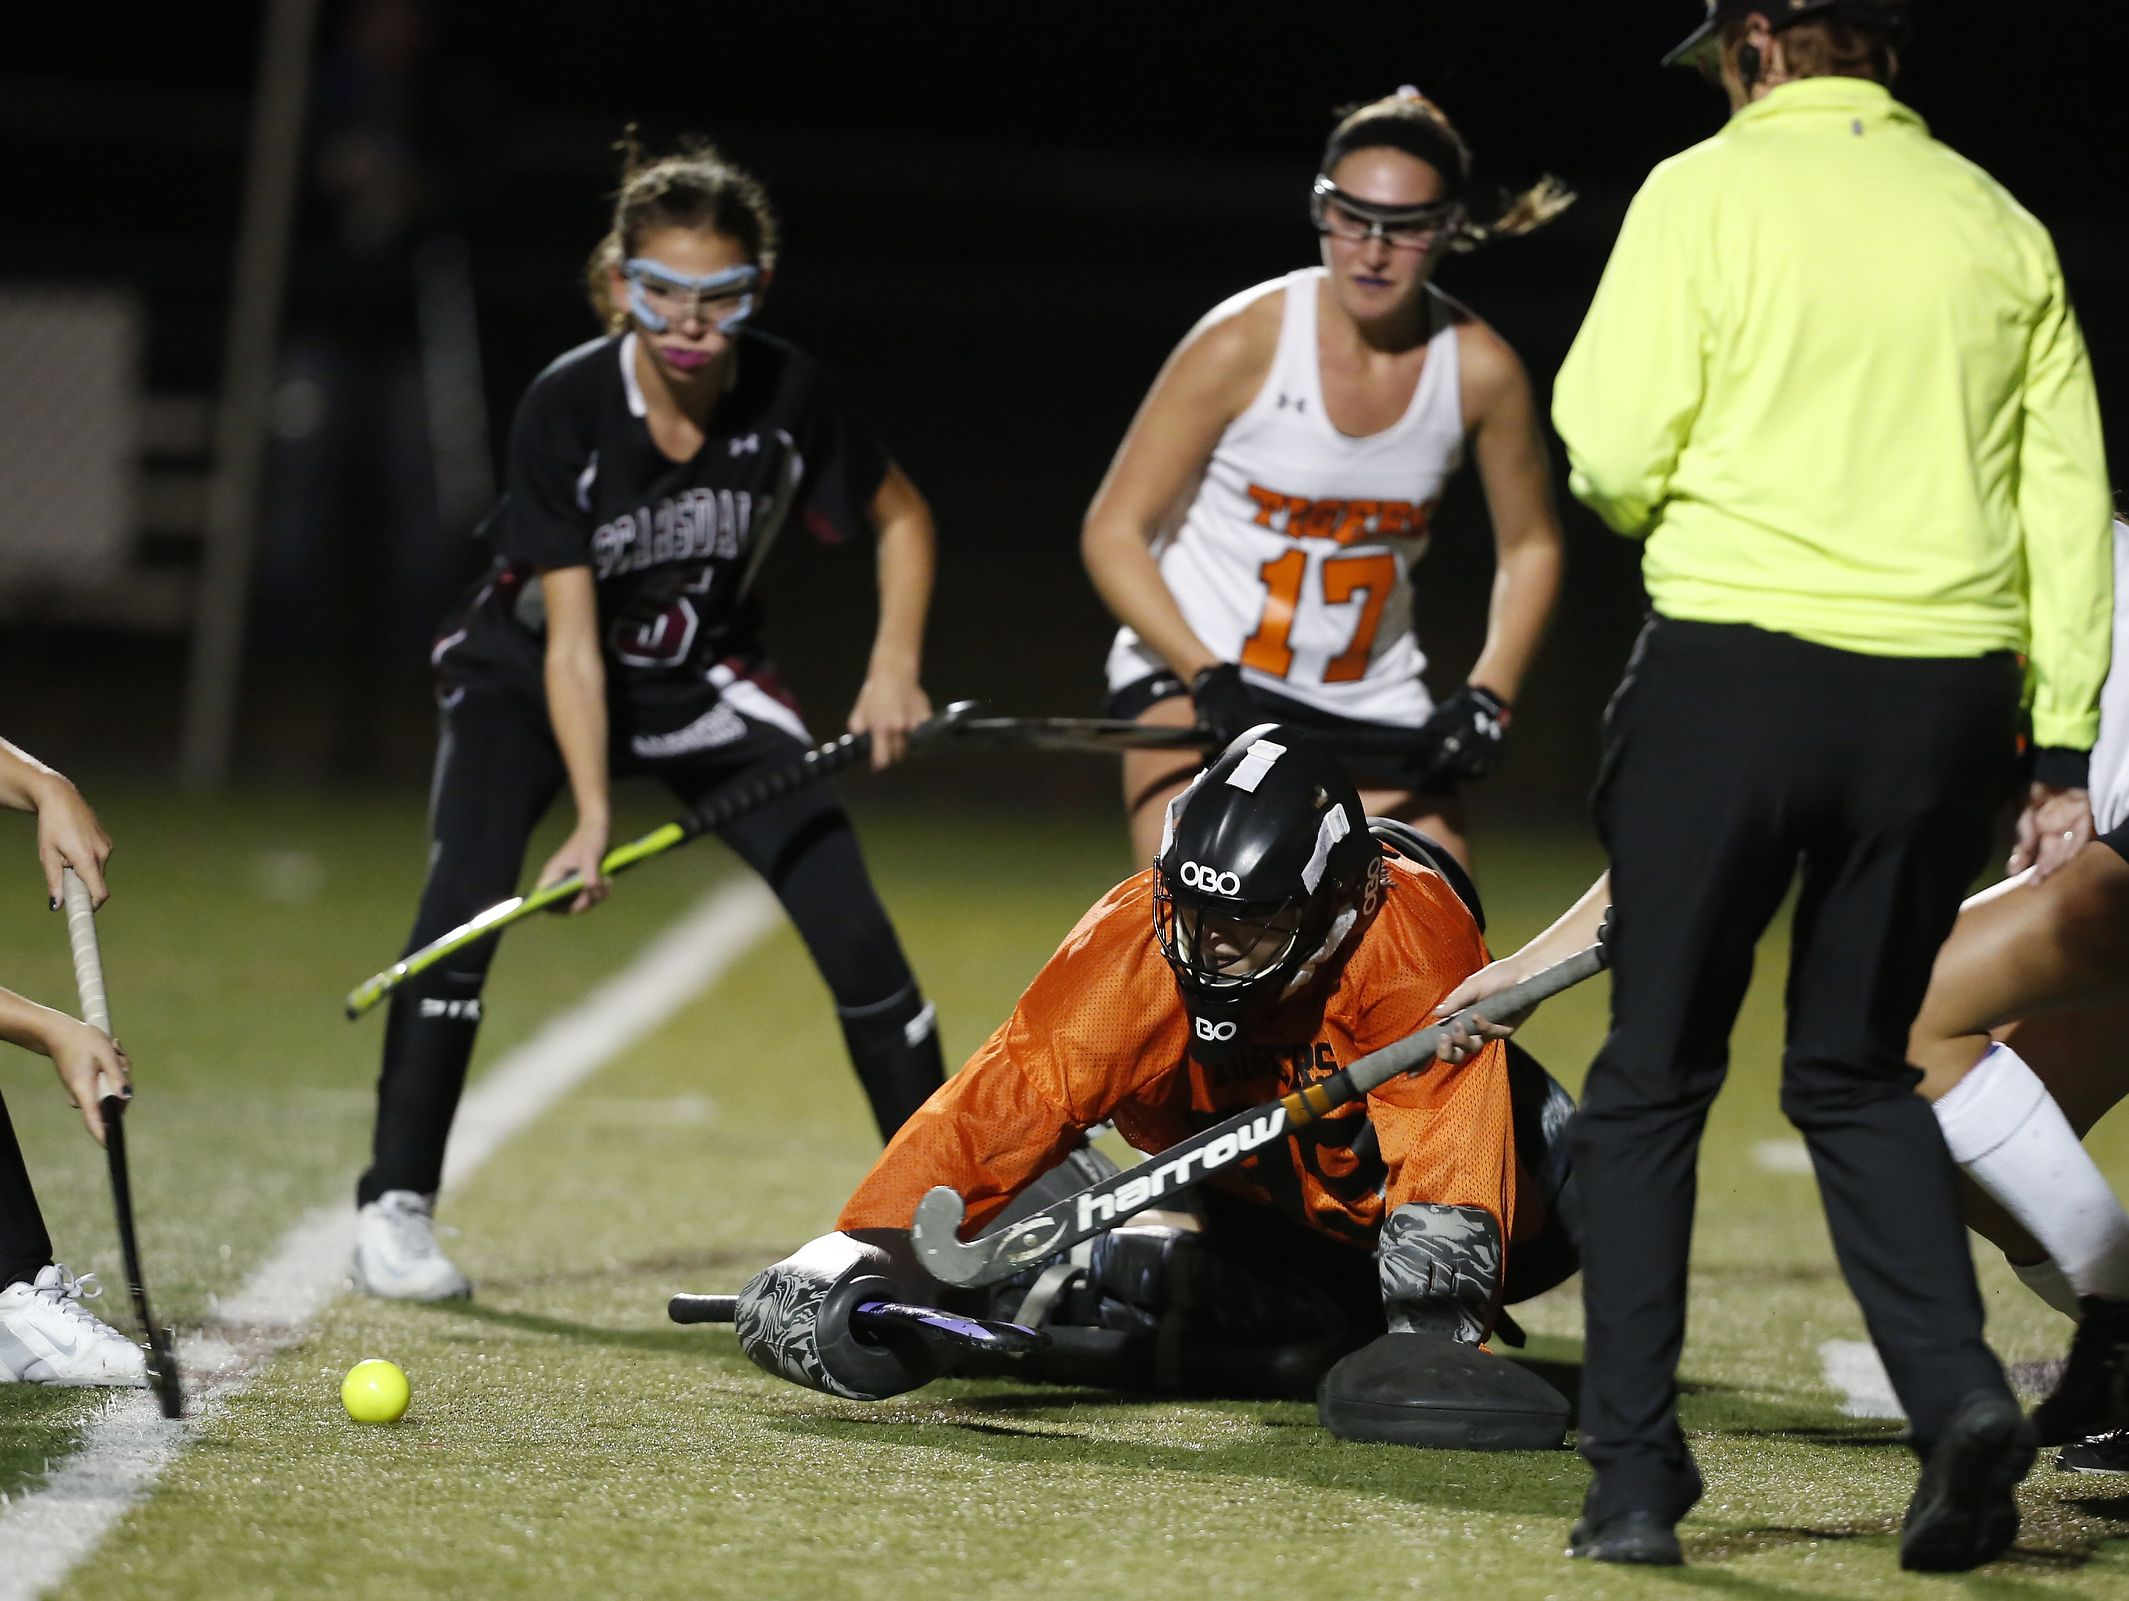 Mamaroneck goalie Charlotte Mackie (99) makes a save on a corner in the Class A field hockey section finals at Brewster High School on Tuesday, November 1, 2016.